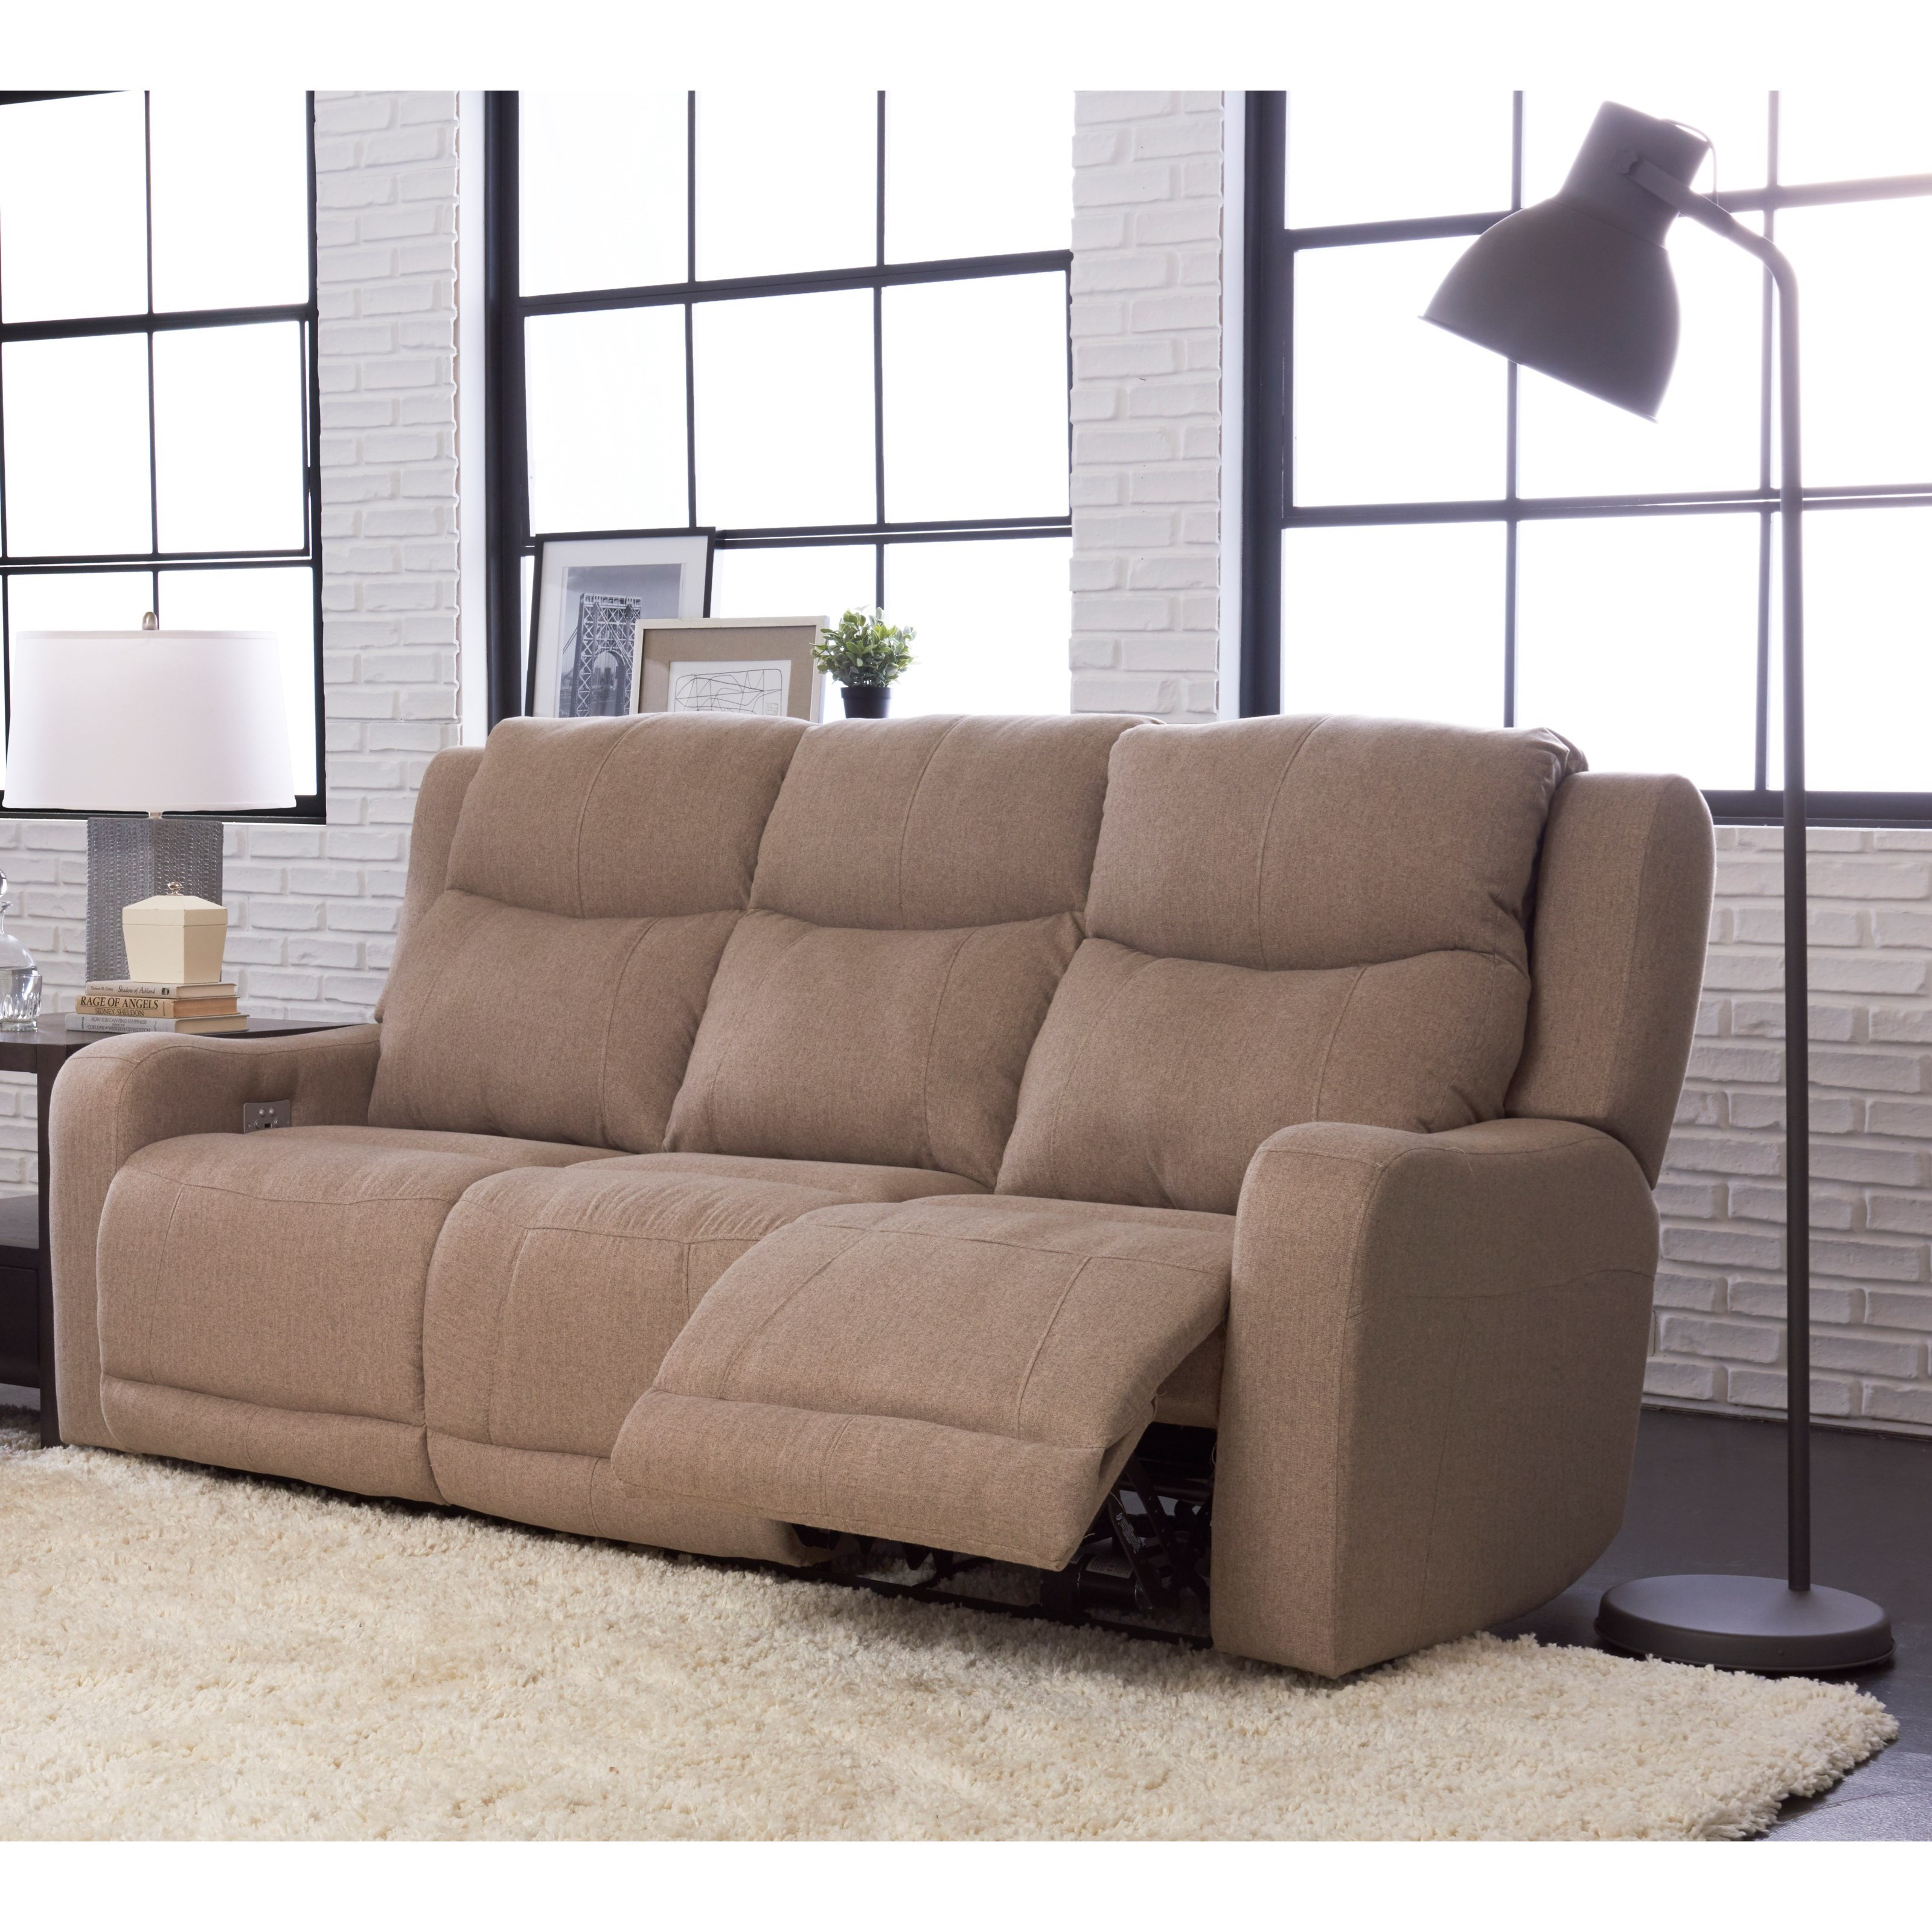 Klaussner Barnett Power Reclining Sofa With Power Headrest